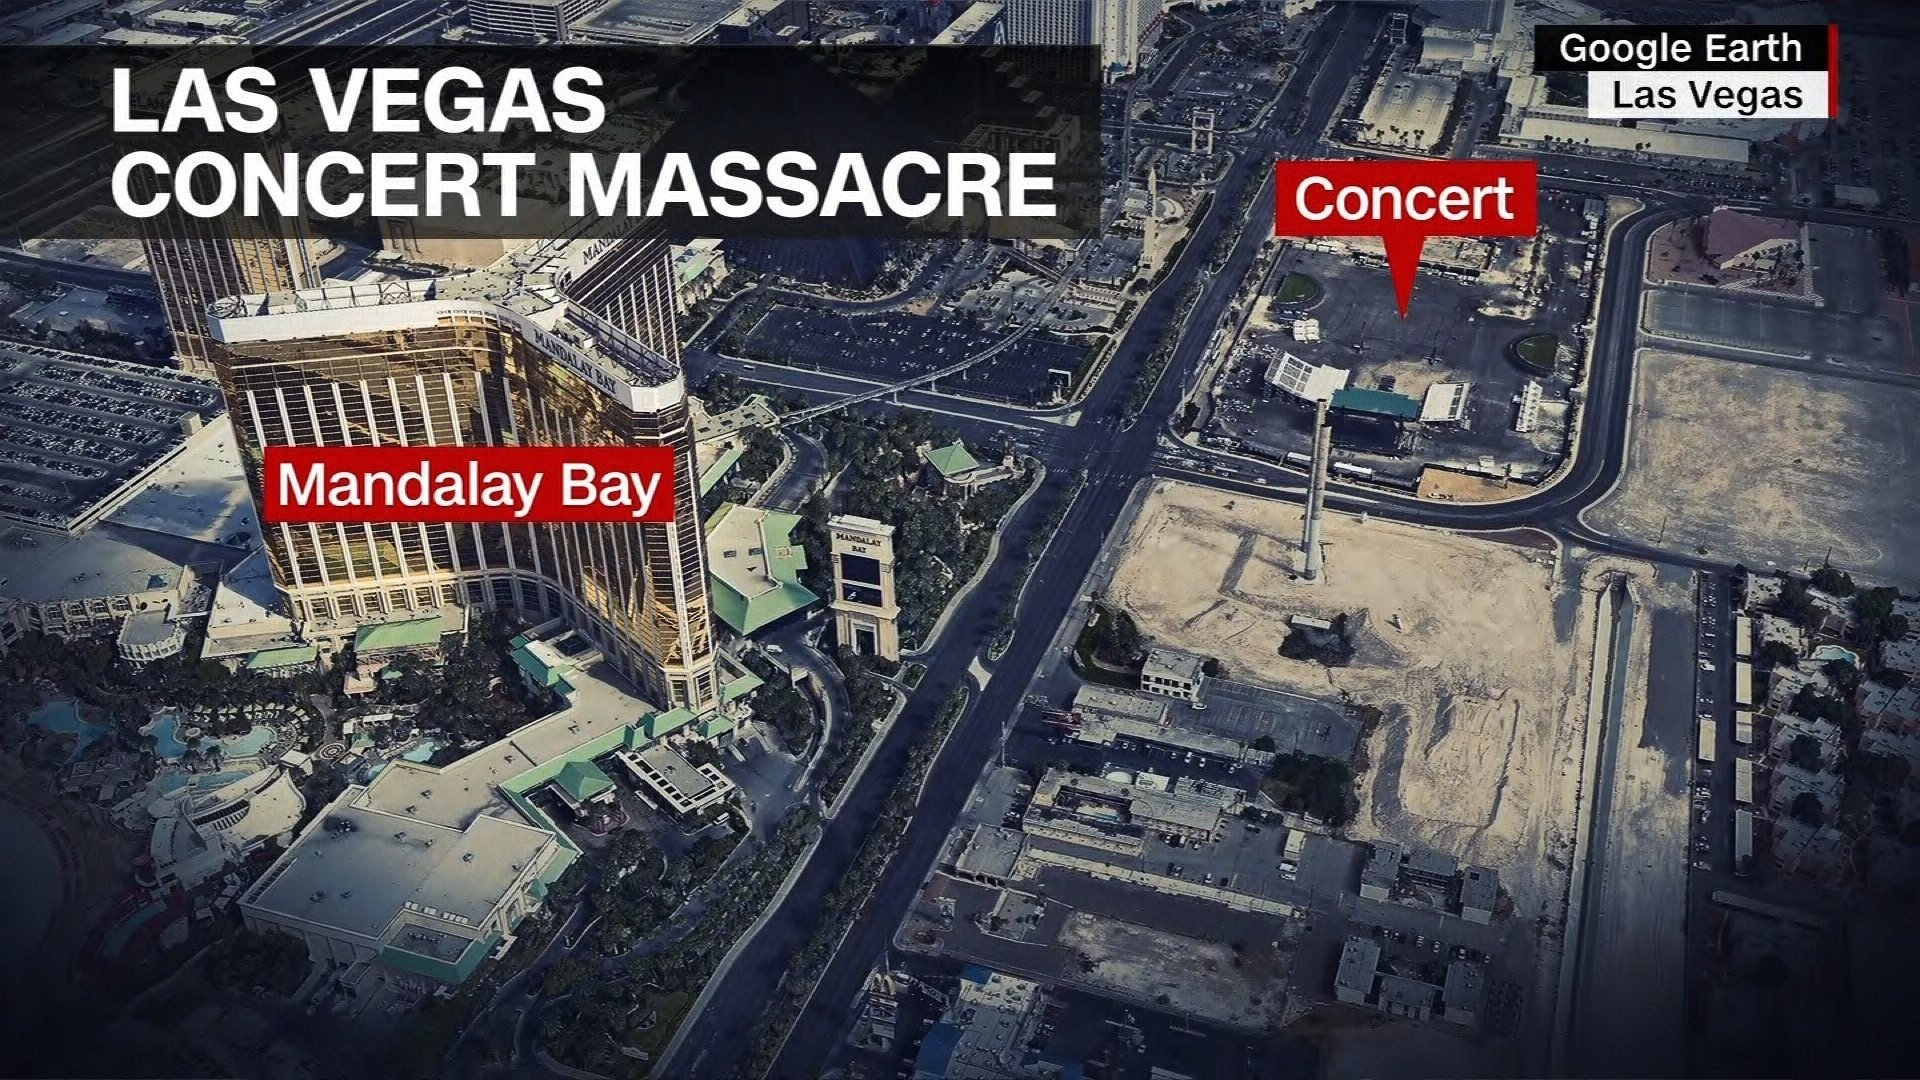 Gunman Fired For About Nine To 11 Minutes - Las Vegas Police